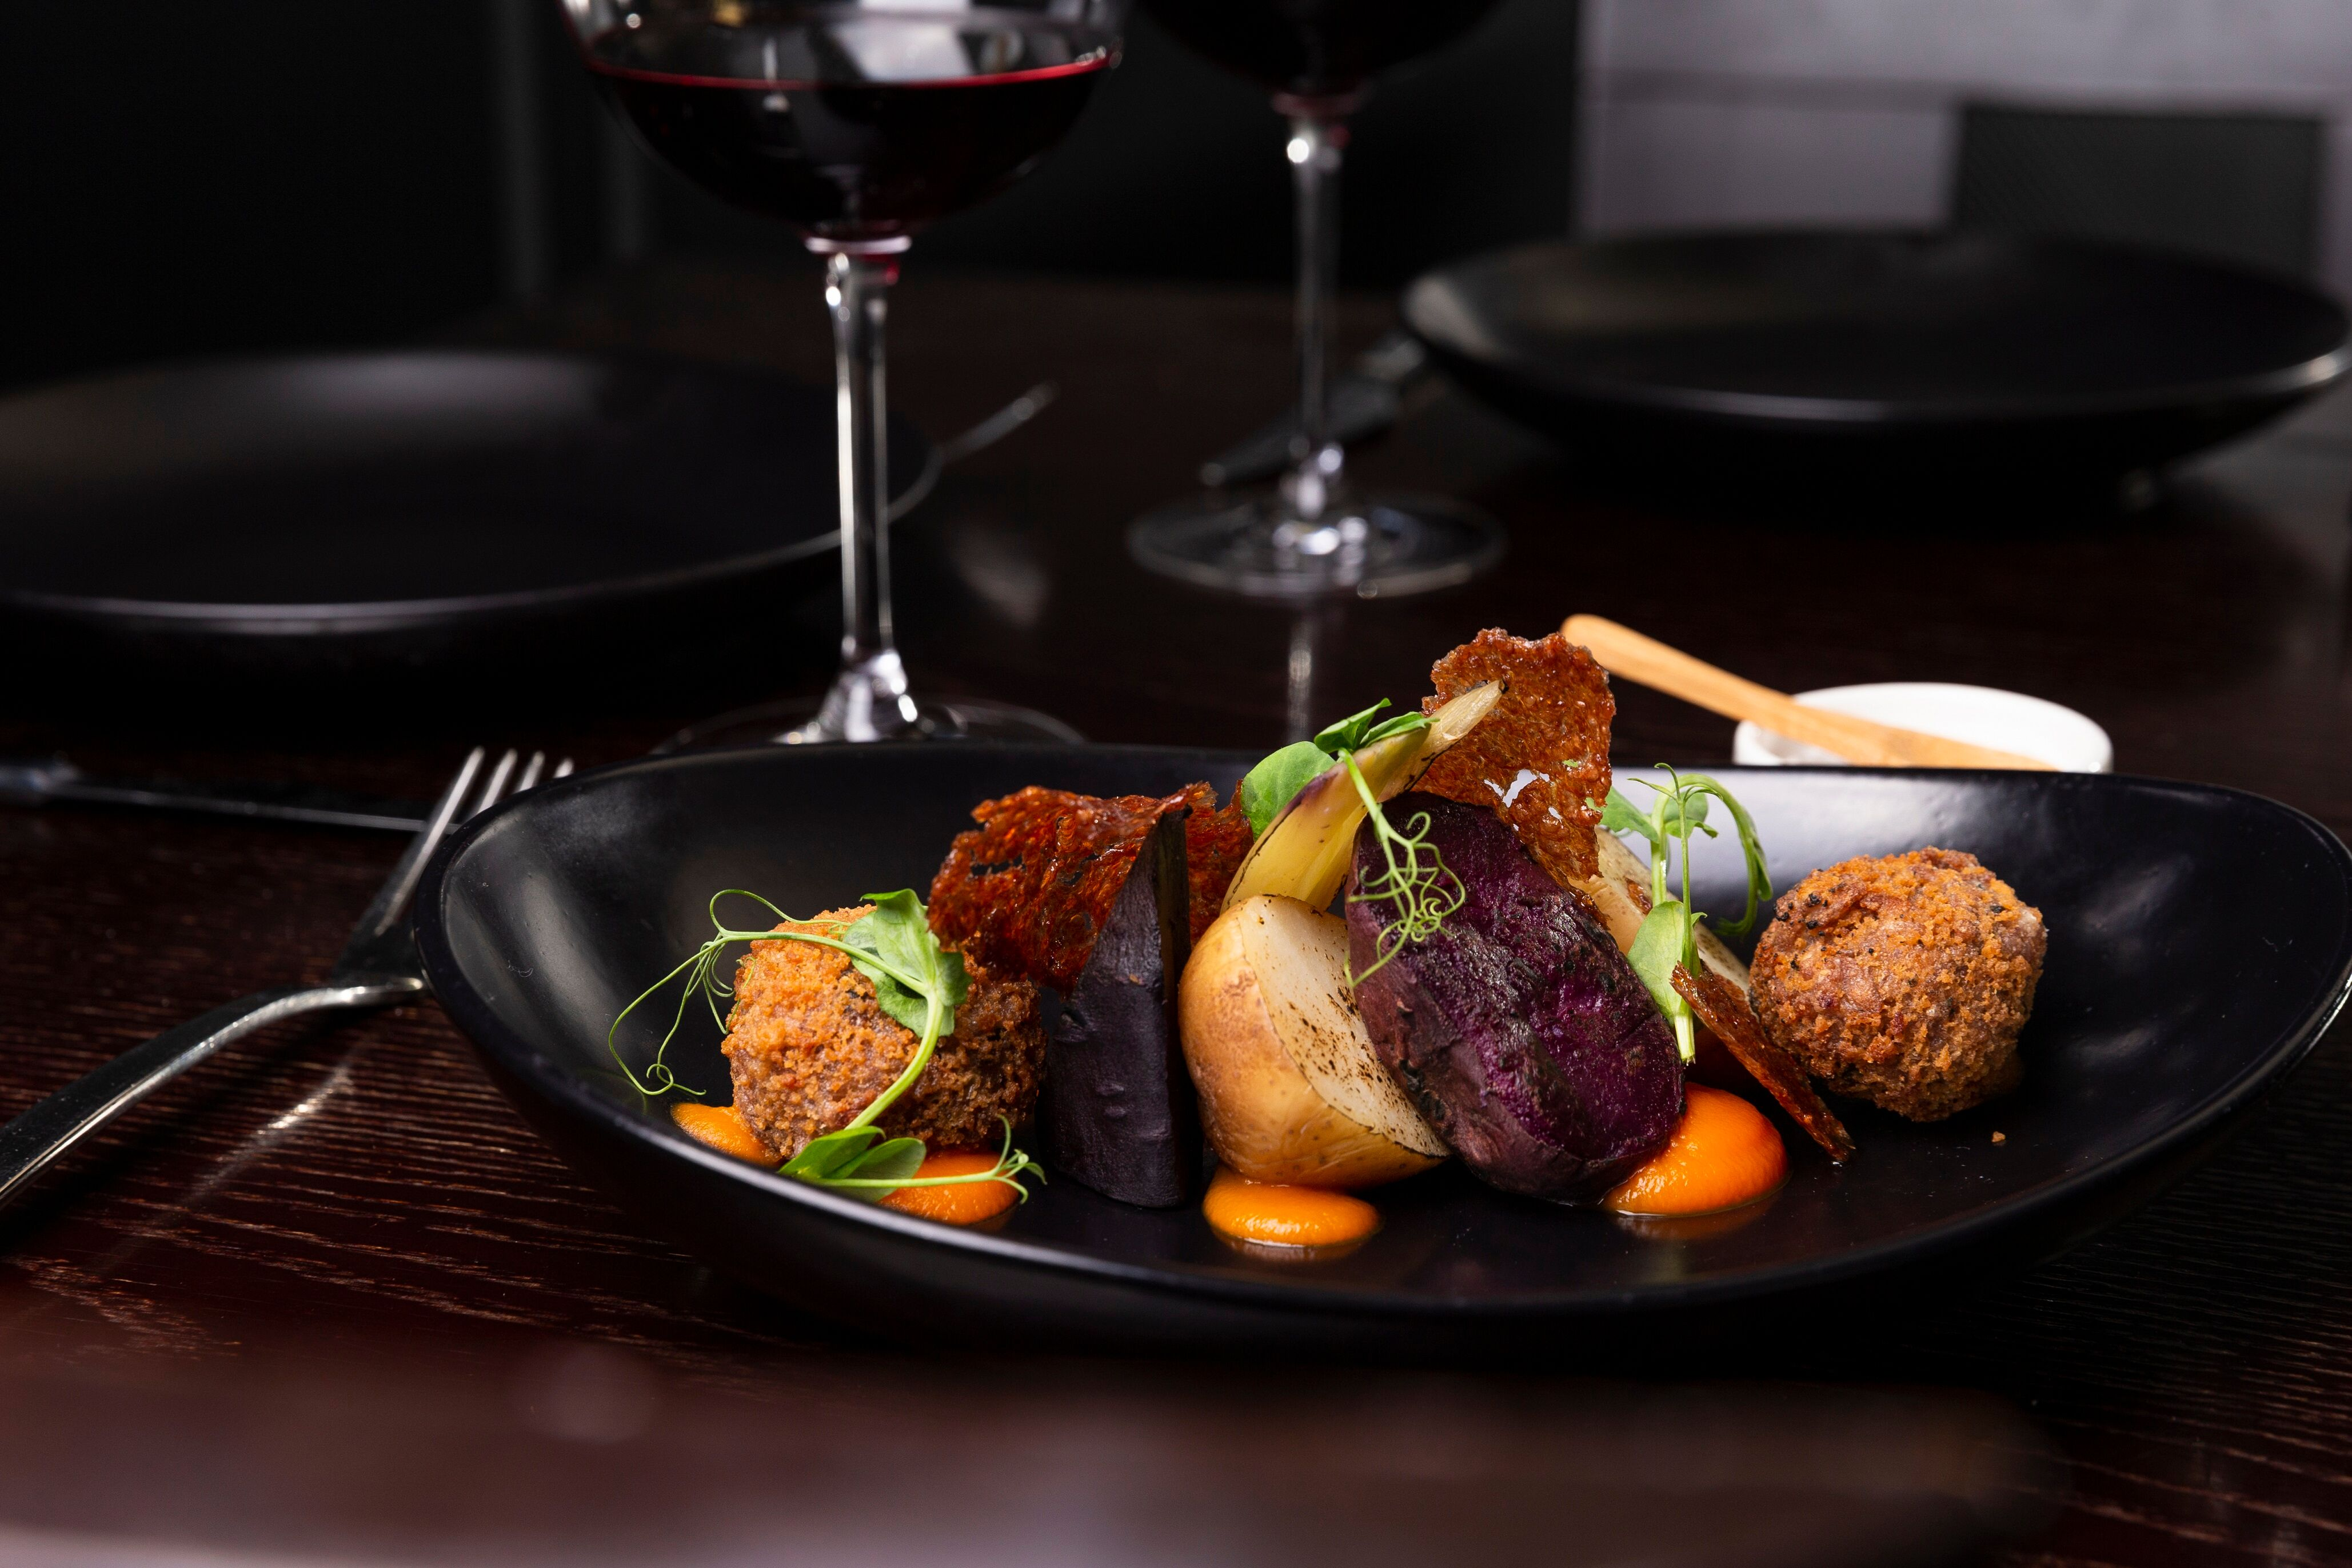 Hāngī style vegetables, carrot puree and horopito arancini.